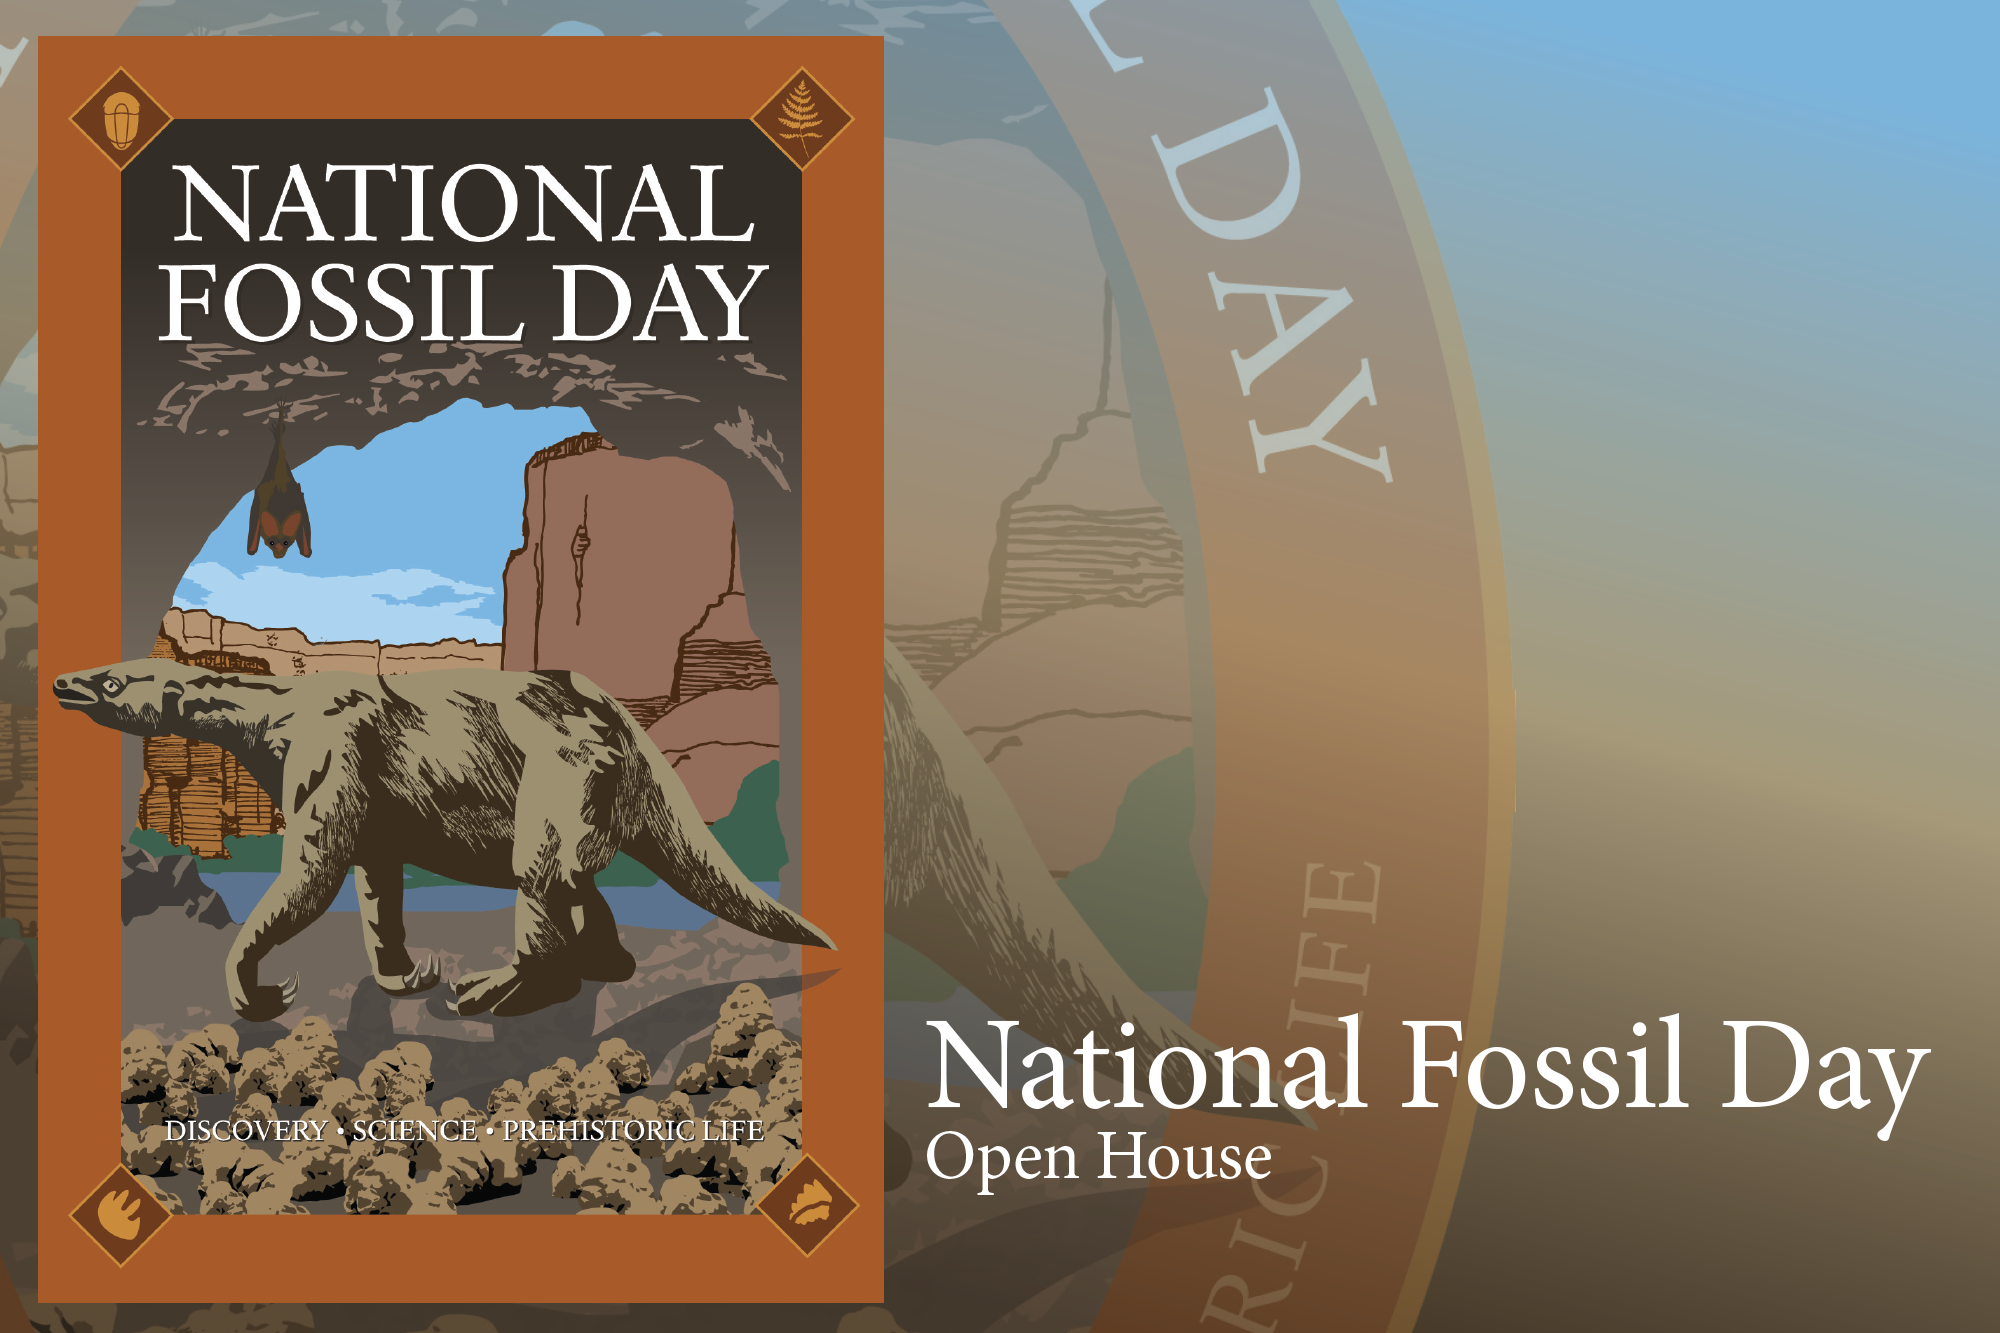 Image of prehistoric sloth with words National Fossil Day Open House